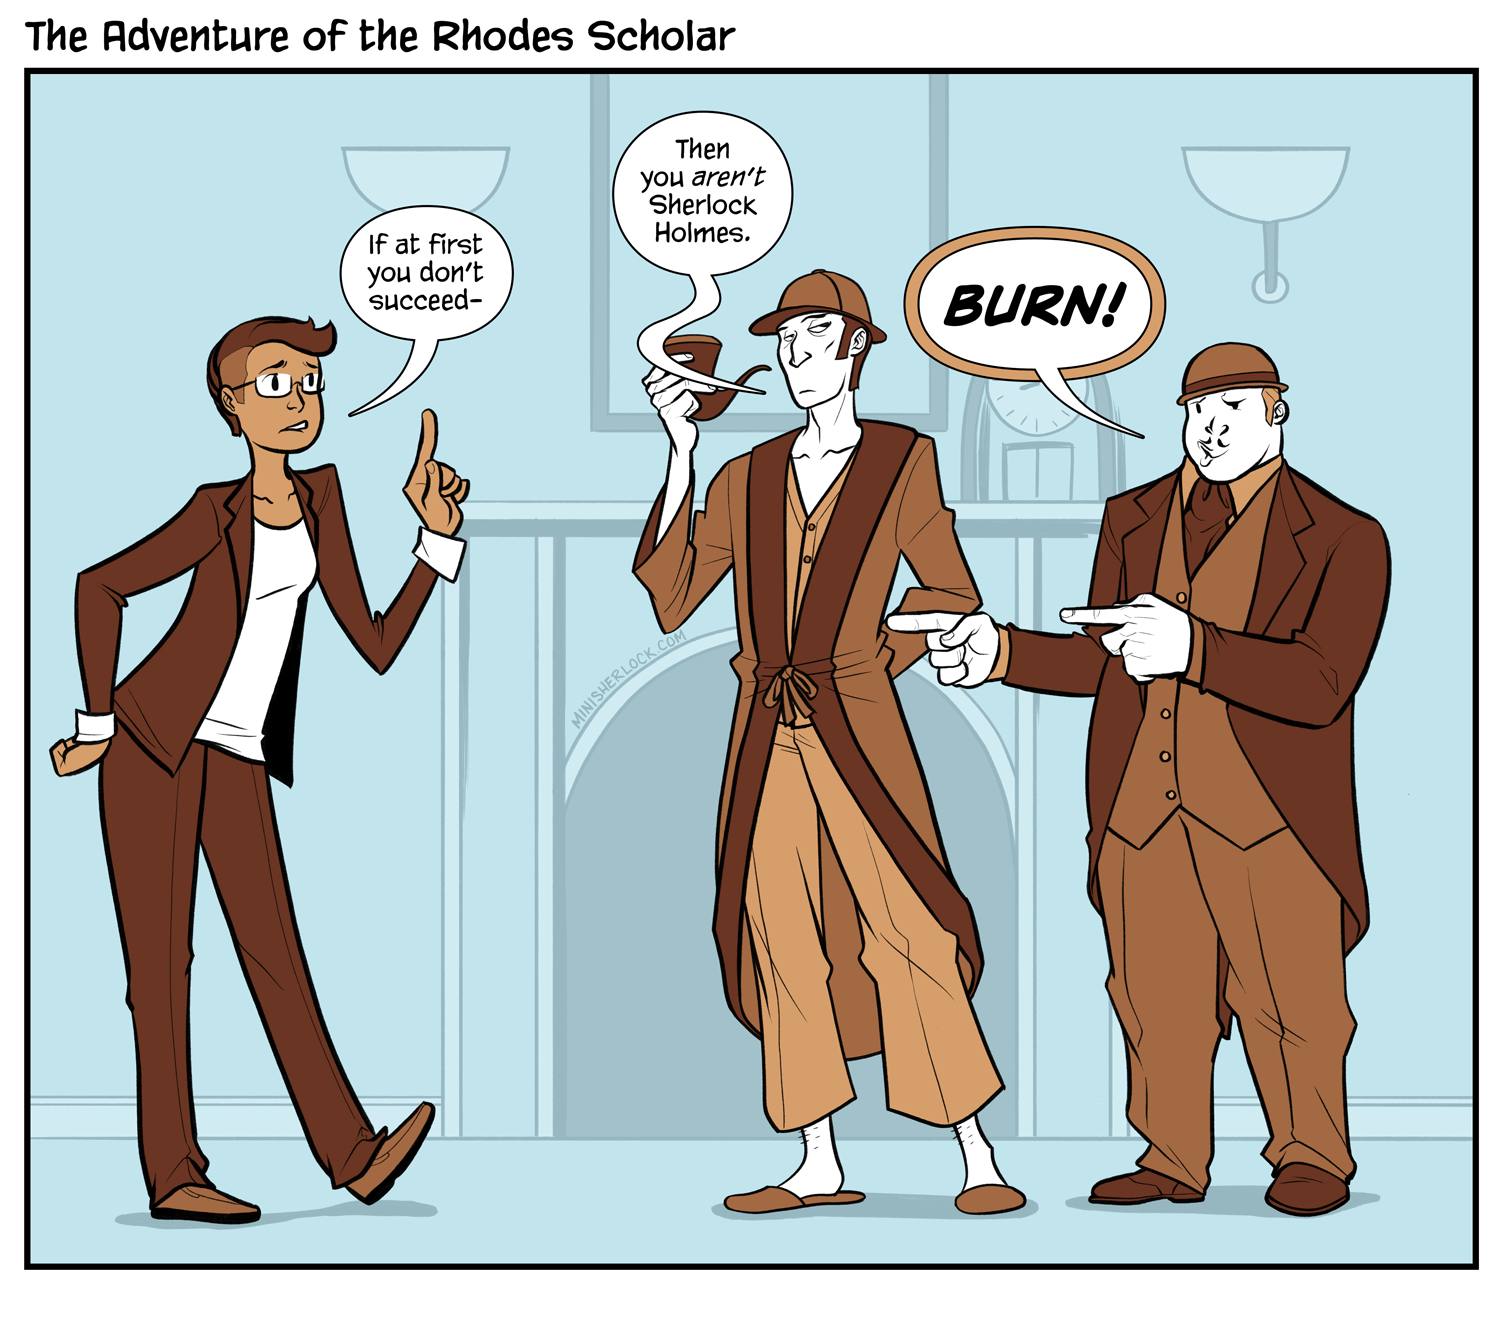 The Adventure of the Rhodes Scholar